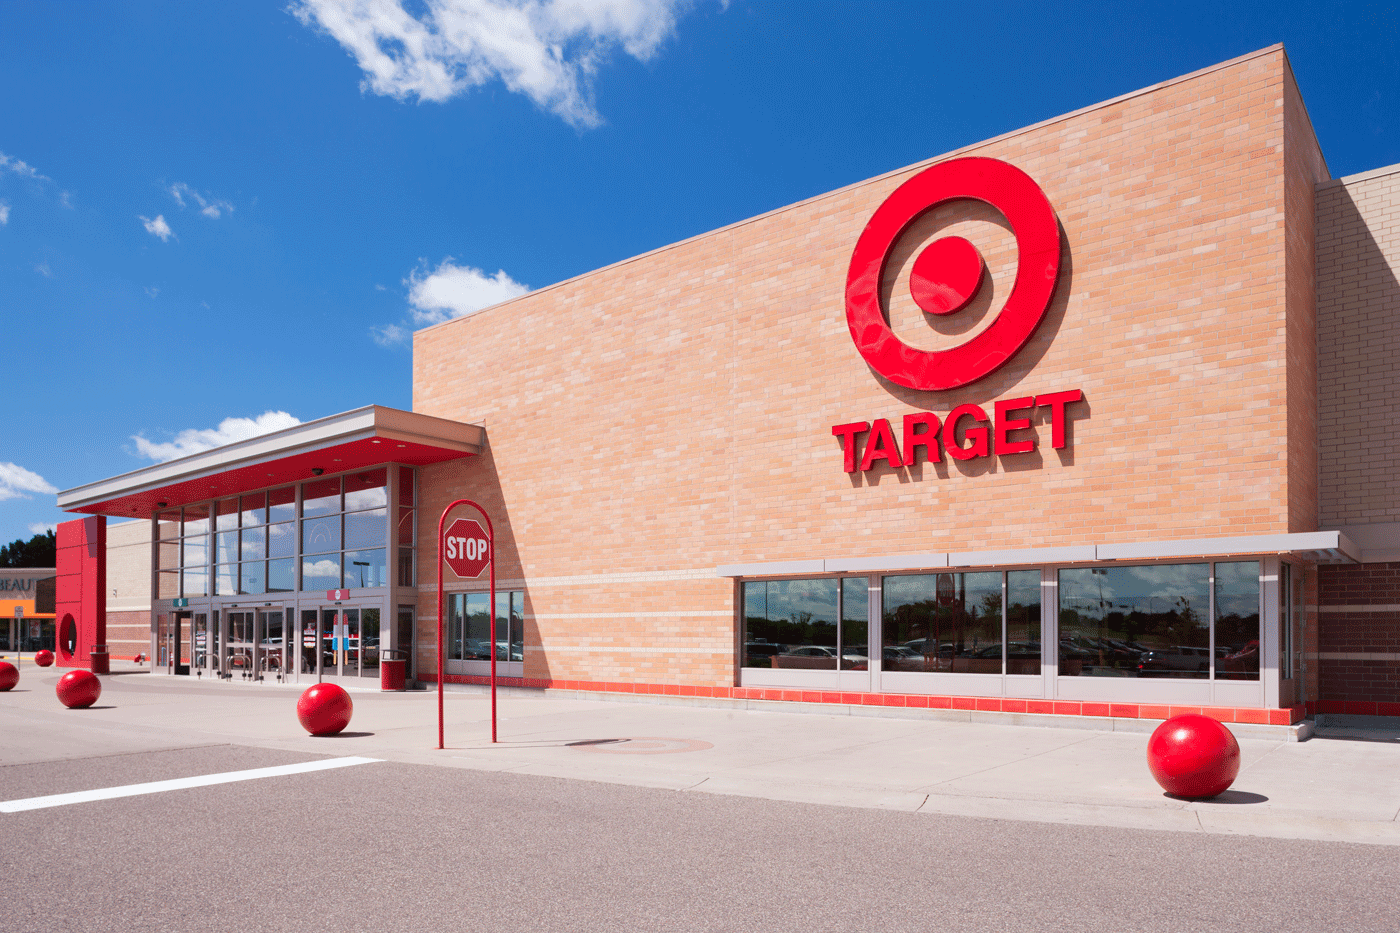 On Target: Rethinking the Retail Website